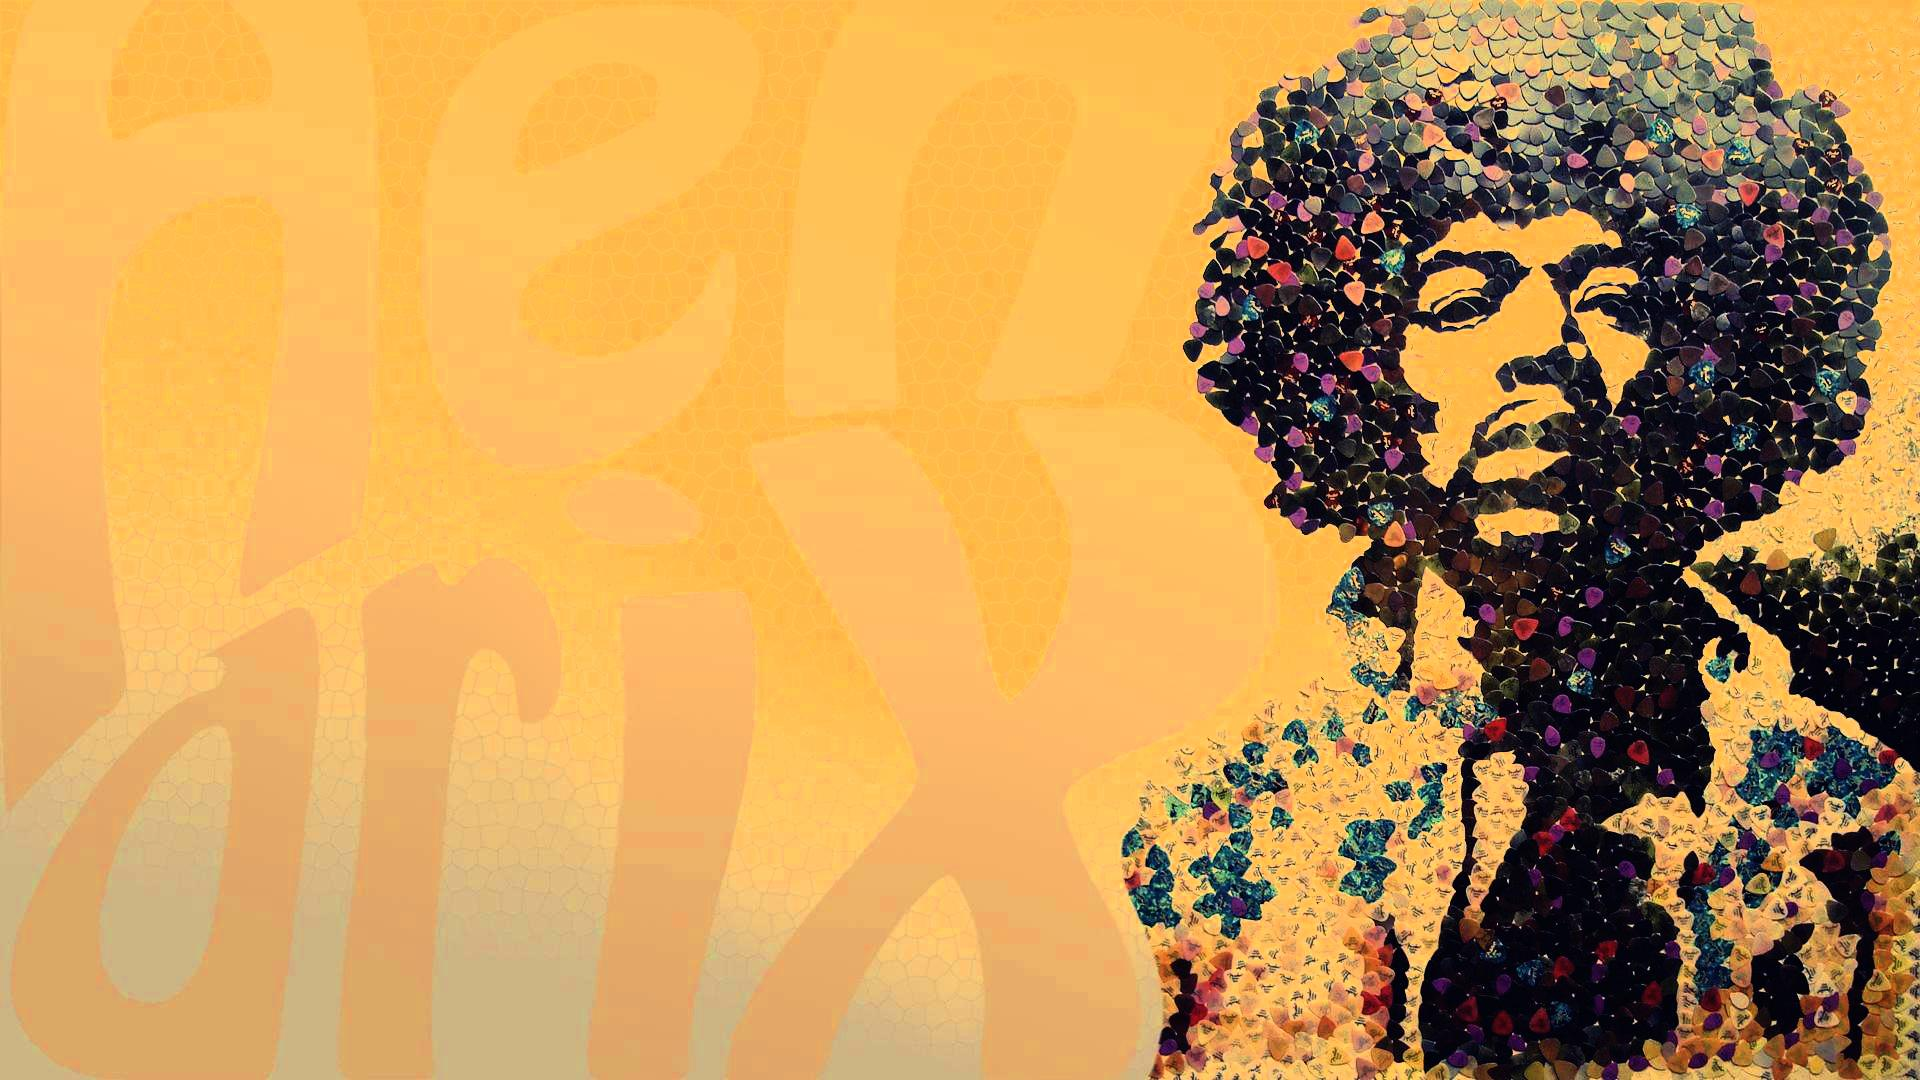 Clipart  Jimi Hendrix Portrait With Original Background 1920x1080